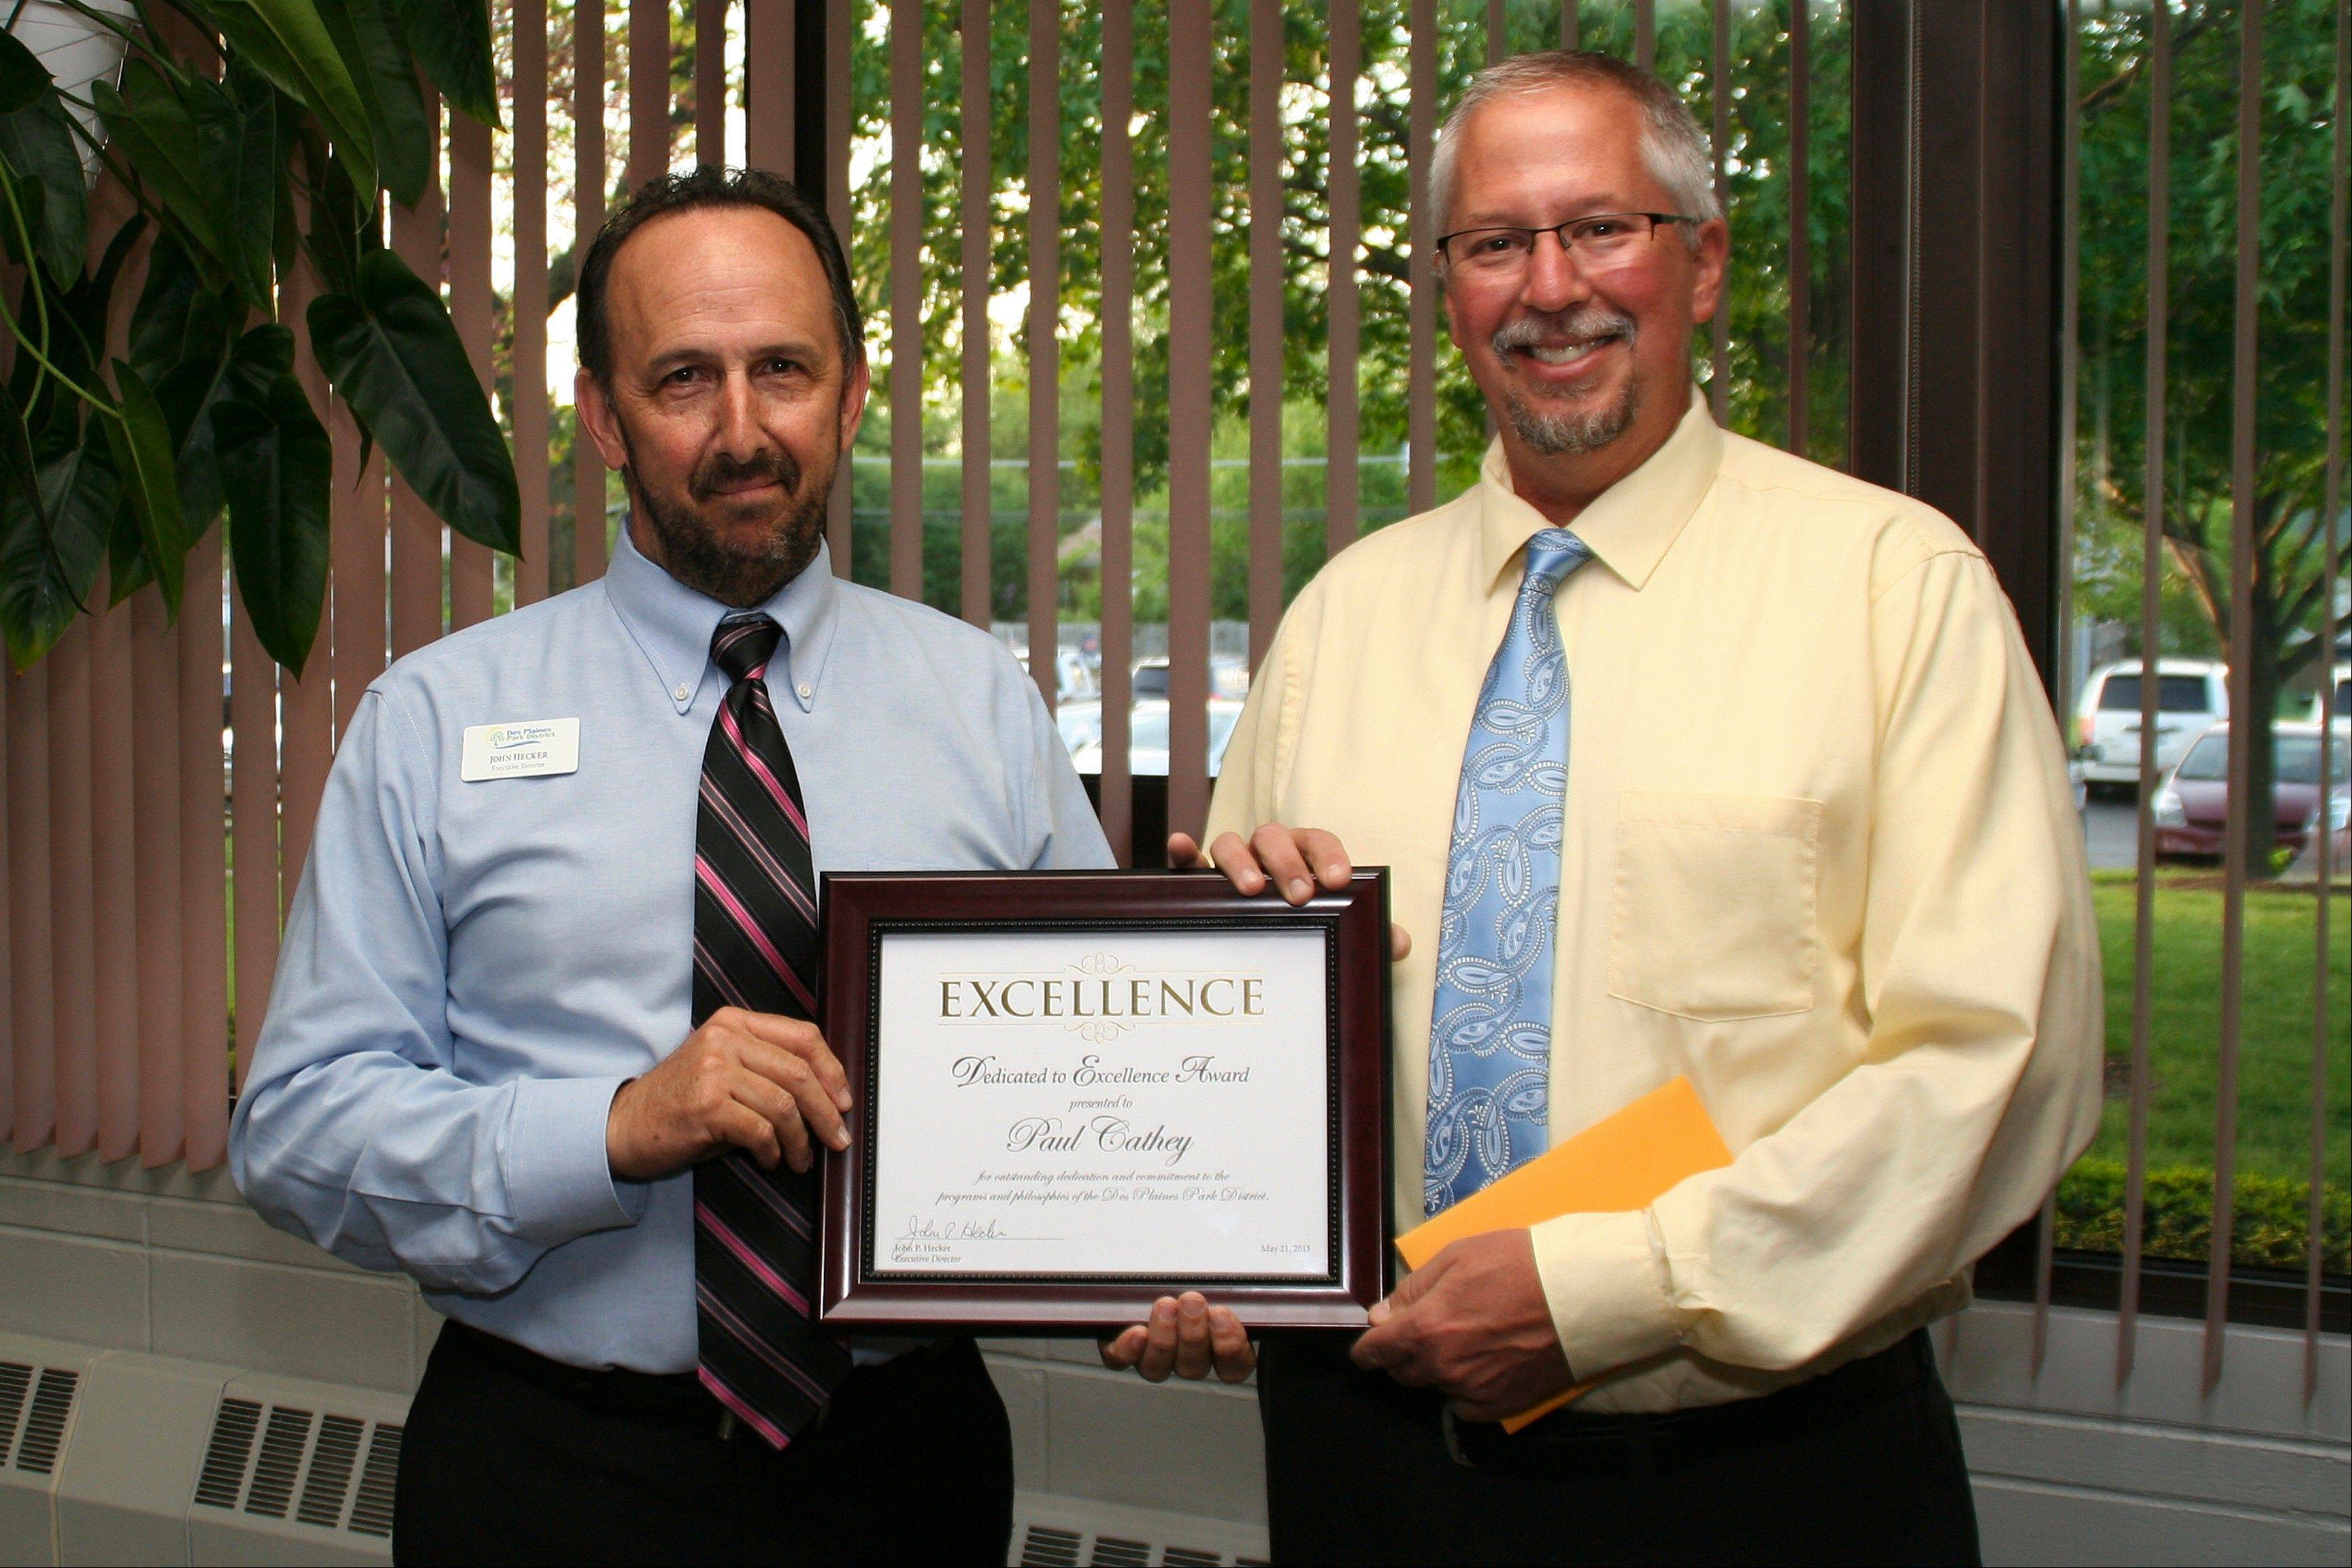 Paul Cathey receives his Dedicated to Excellence Award from Executive Director John Hecker at the Des Plaines park board meeting on May 21.